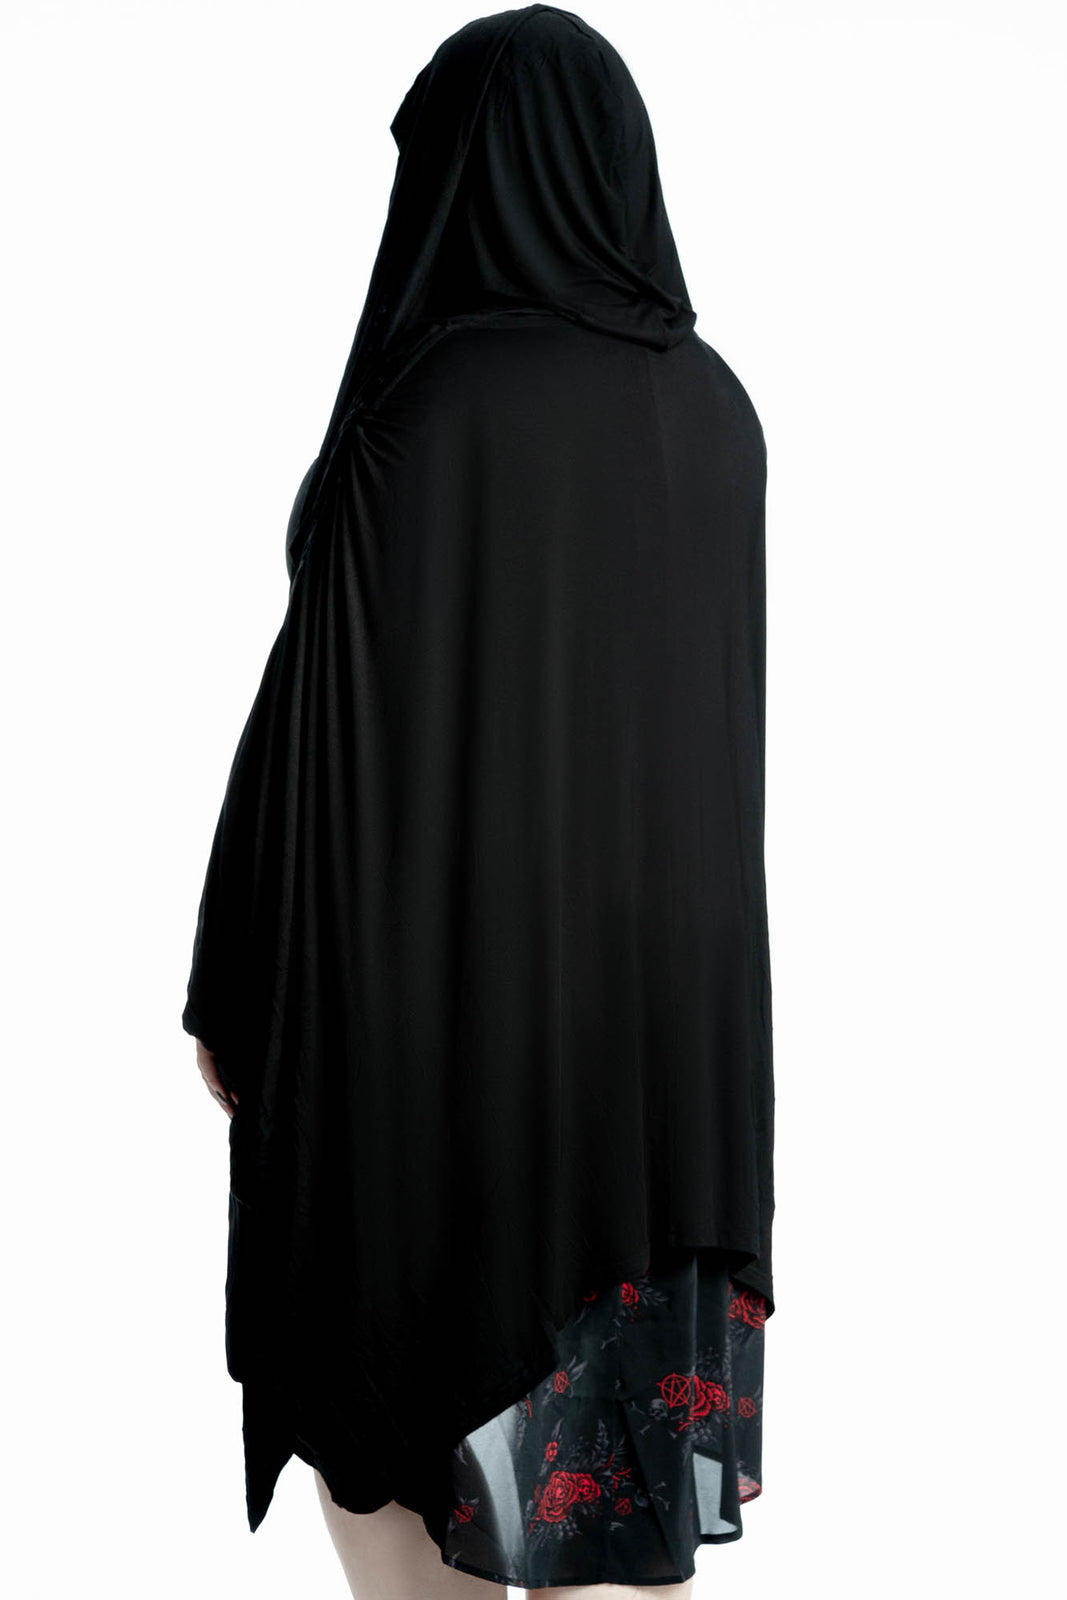 In The Shadows Cloak [PLUS]